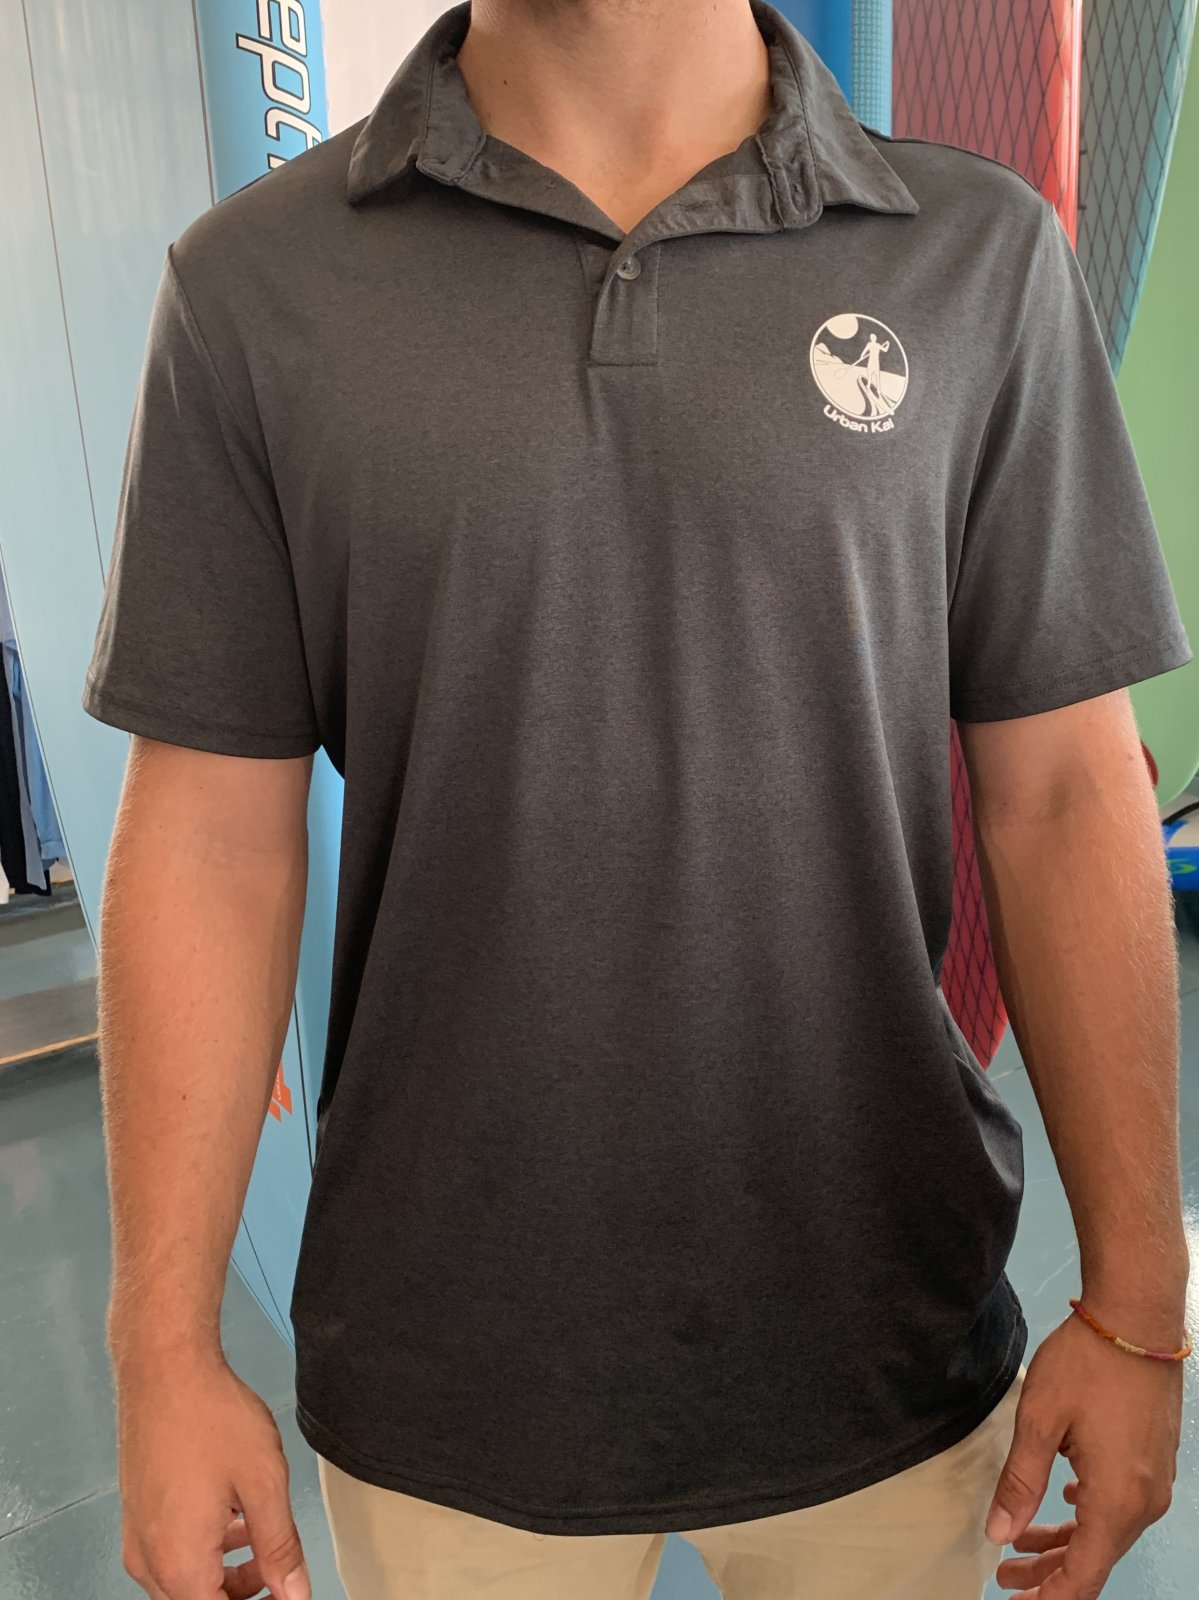 UK Short Sleeve Polo Sun Shirt in Charcoal